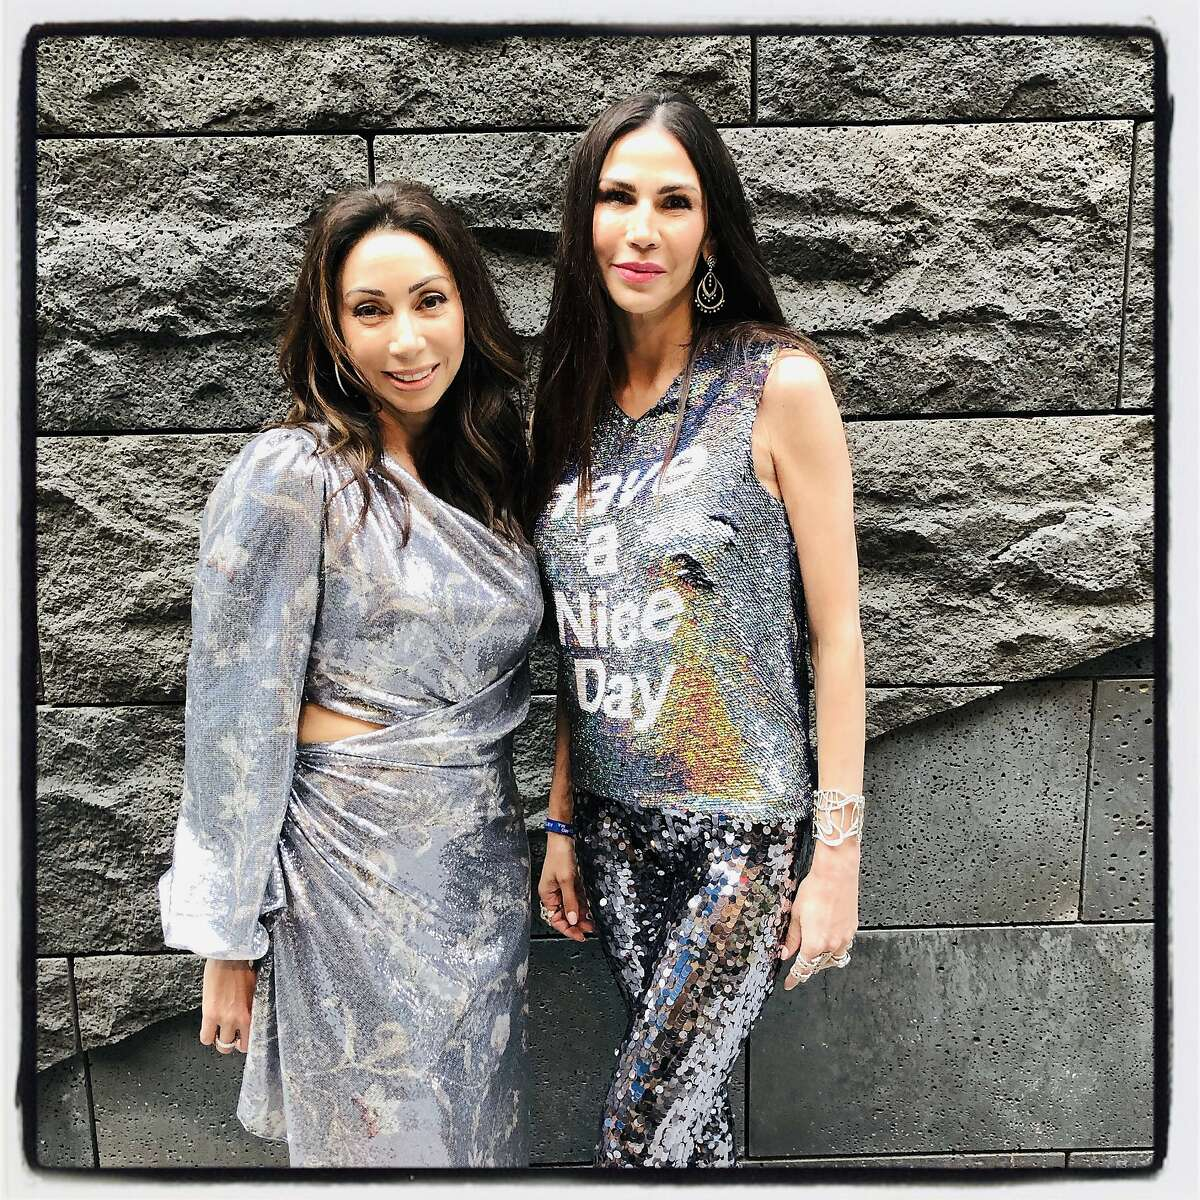 Art Bash committee member Gina Peterson (left) and Nicole Jacob at SFMOMA. May 22, 2019.